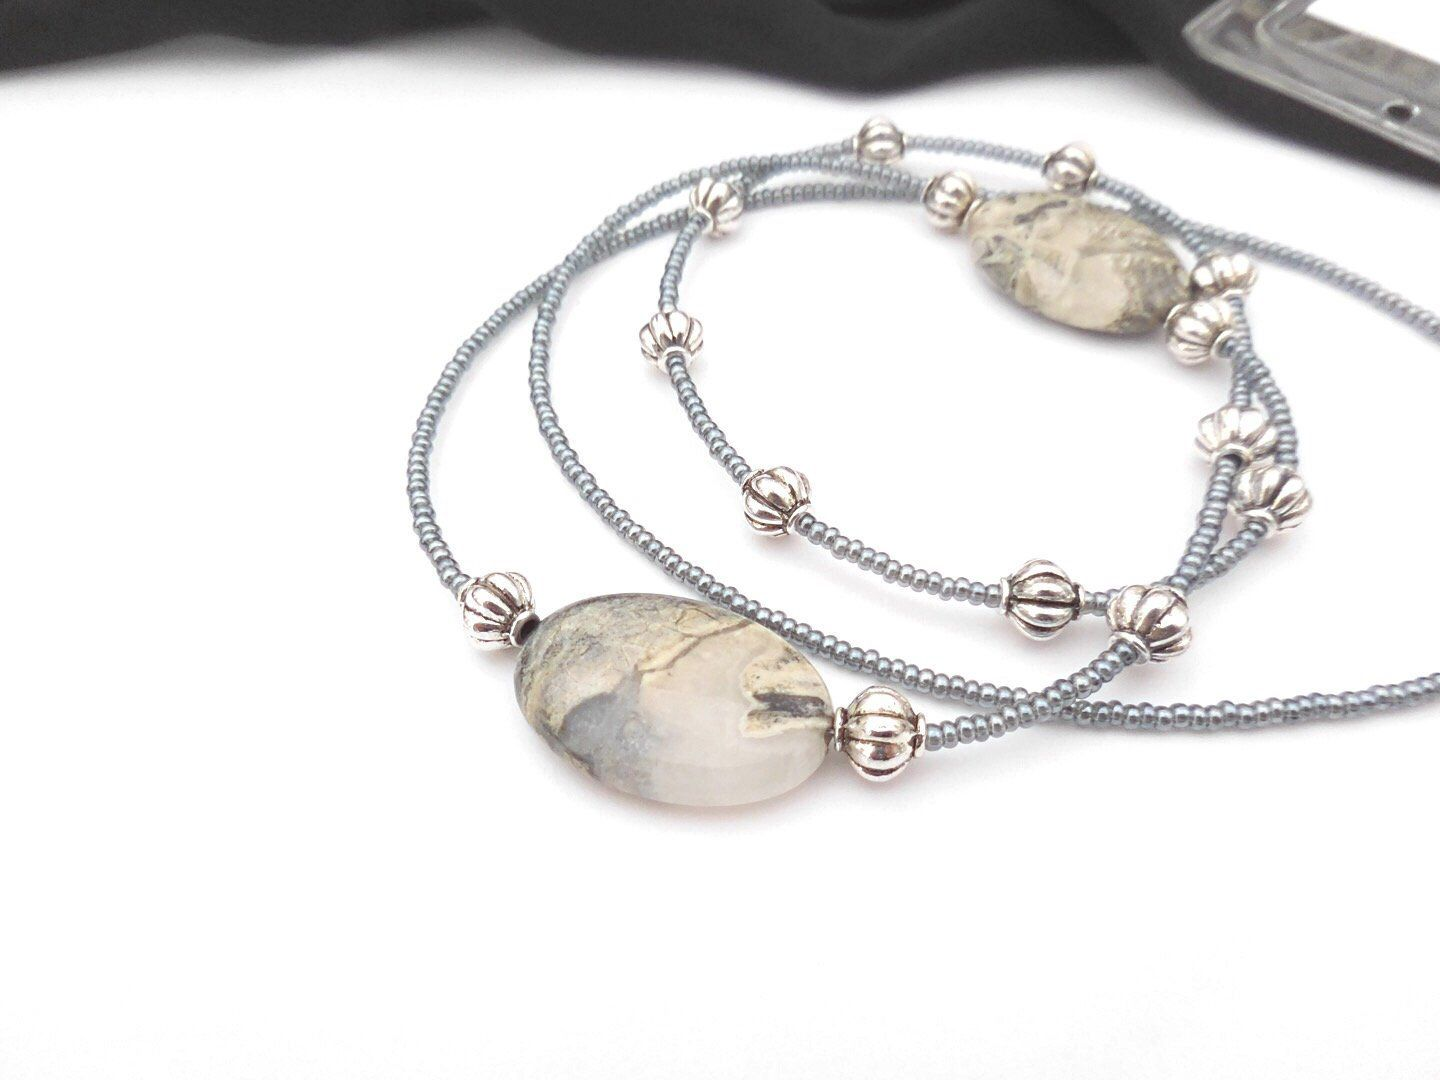 Fancy jasper lanyard necklace with id card holder silver